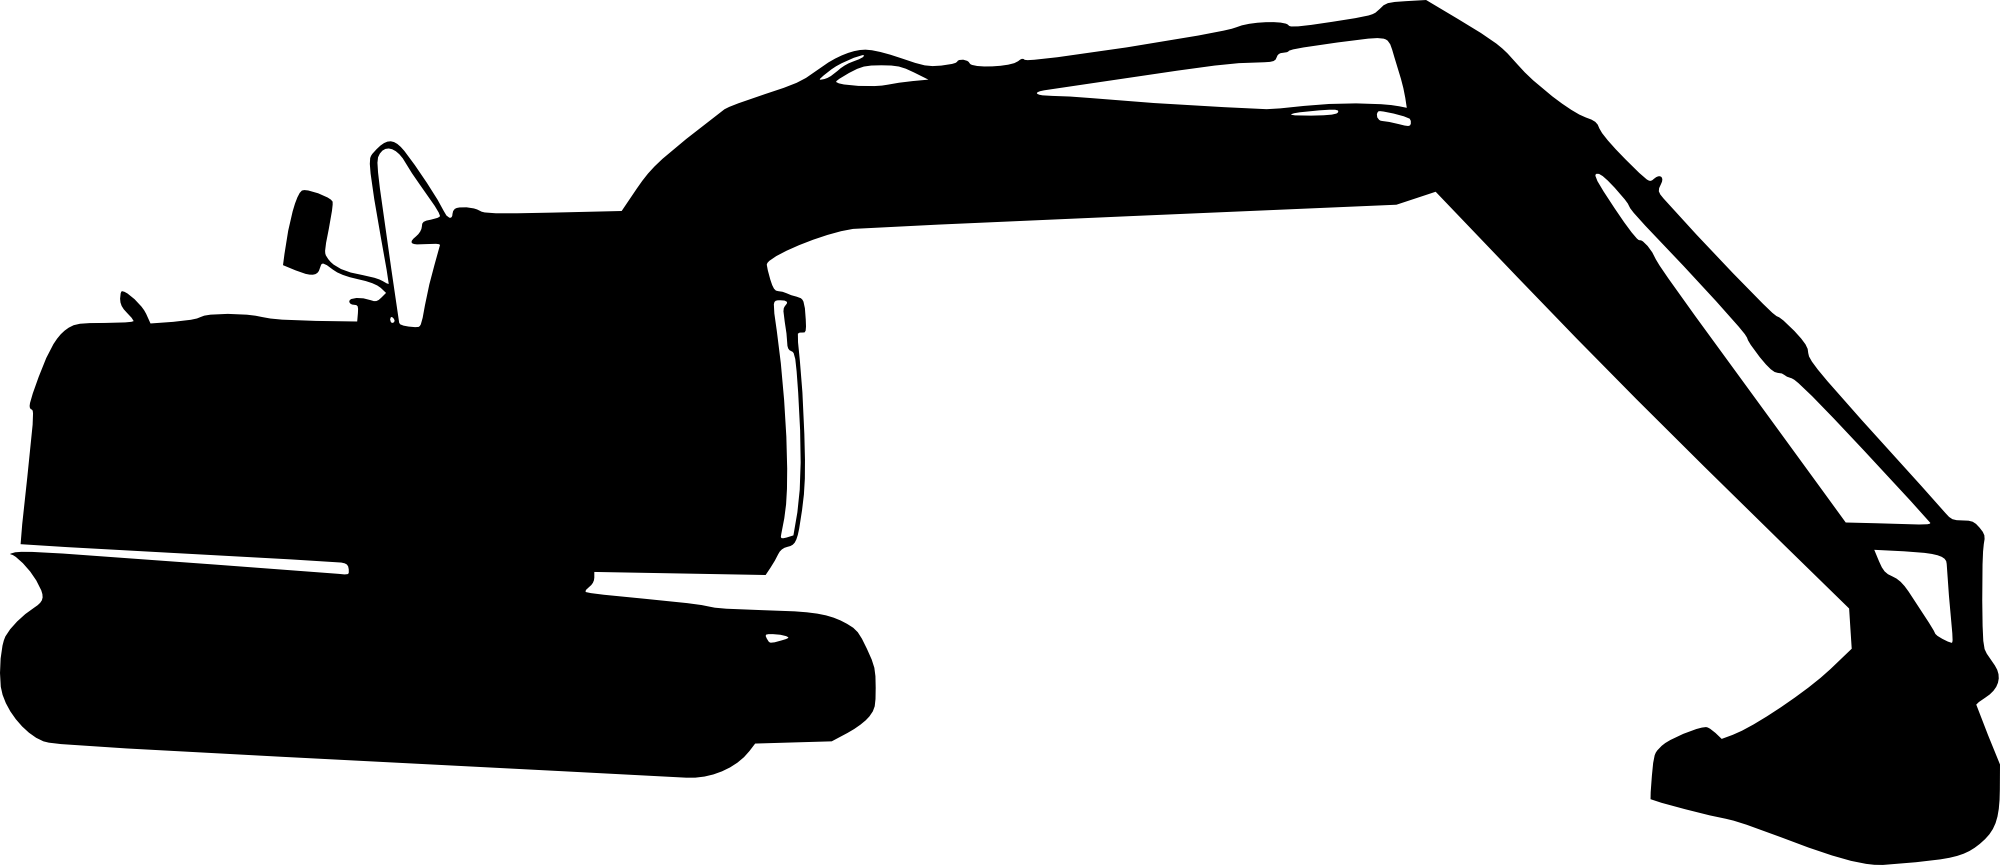 jpg transparent download Backhoe clipart silhouette. Digger at getdrawings com